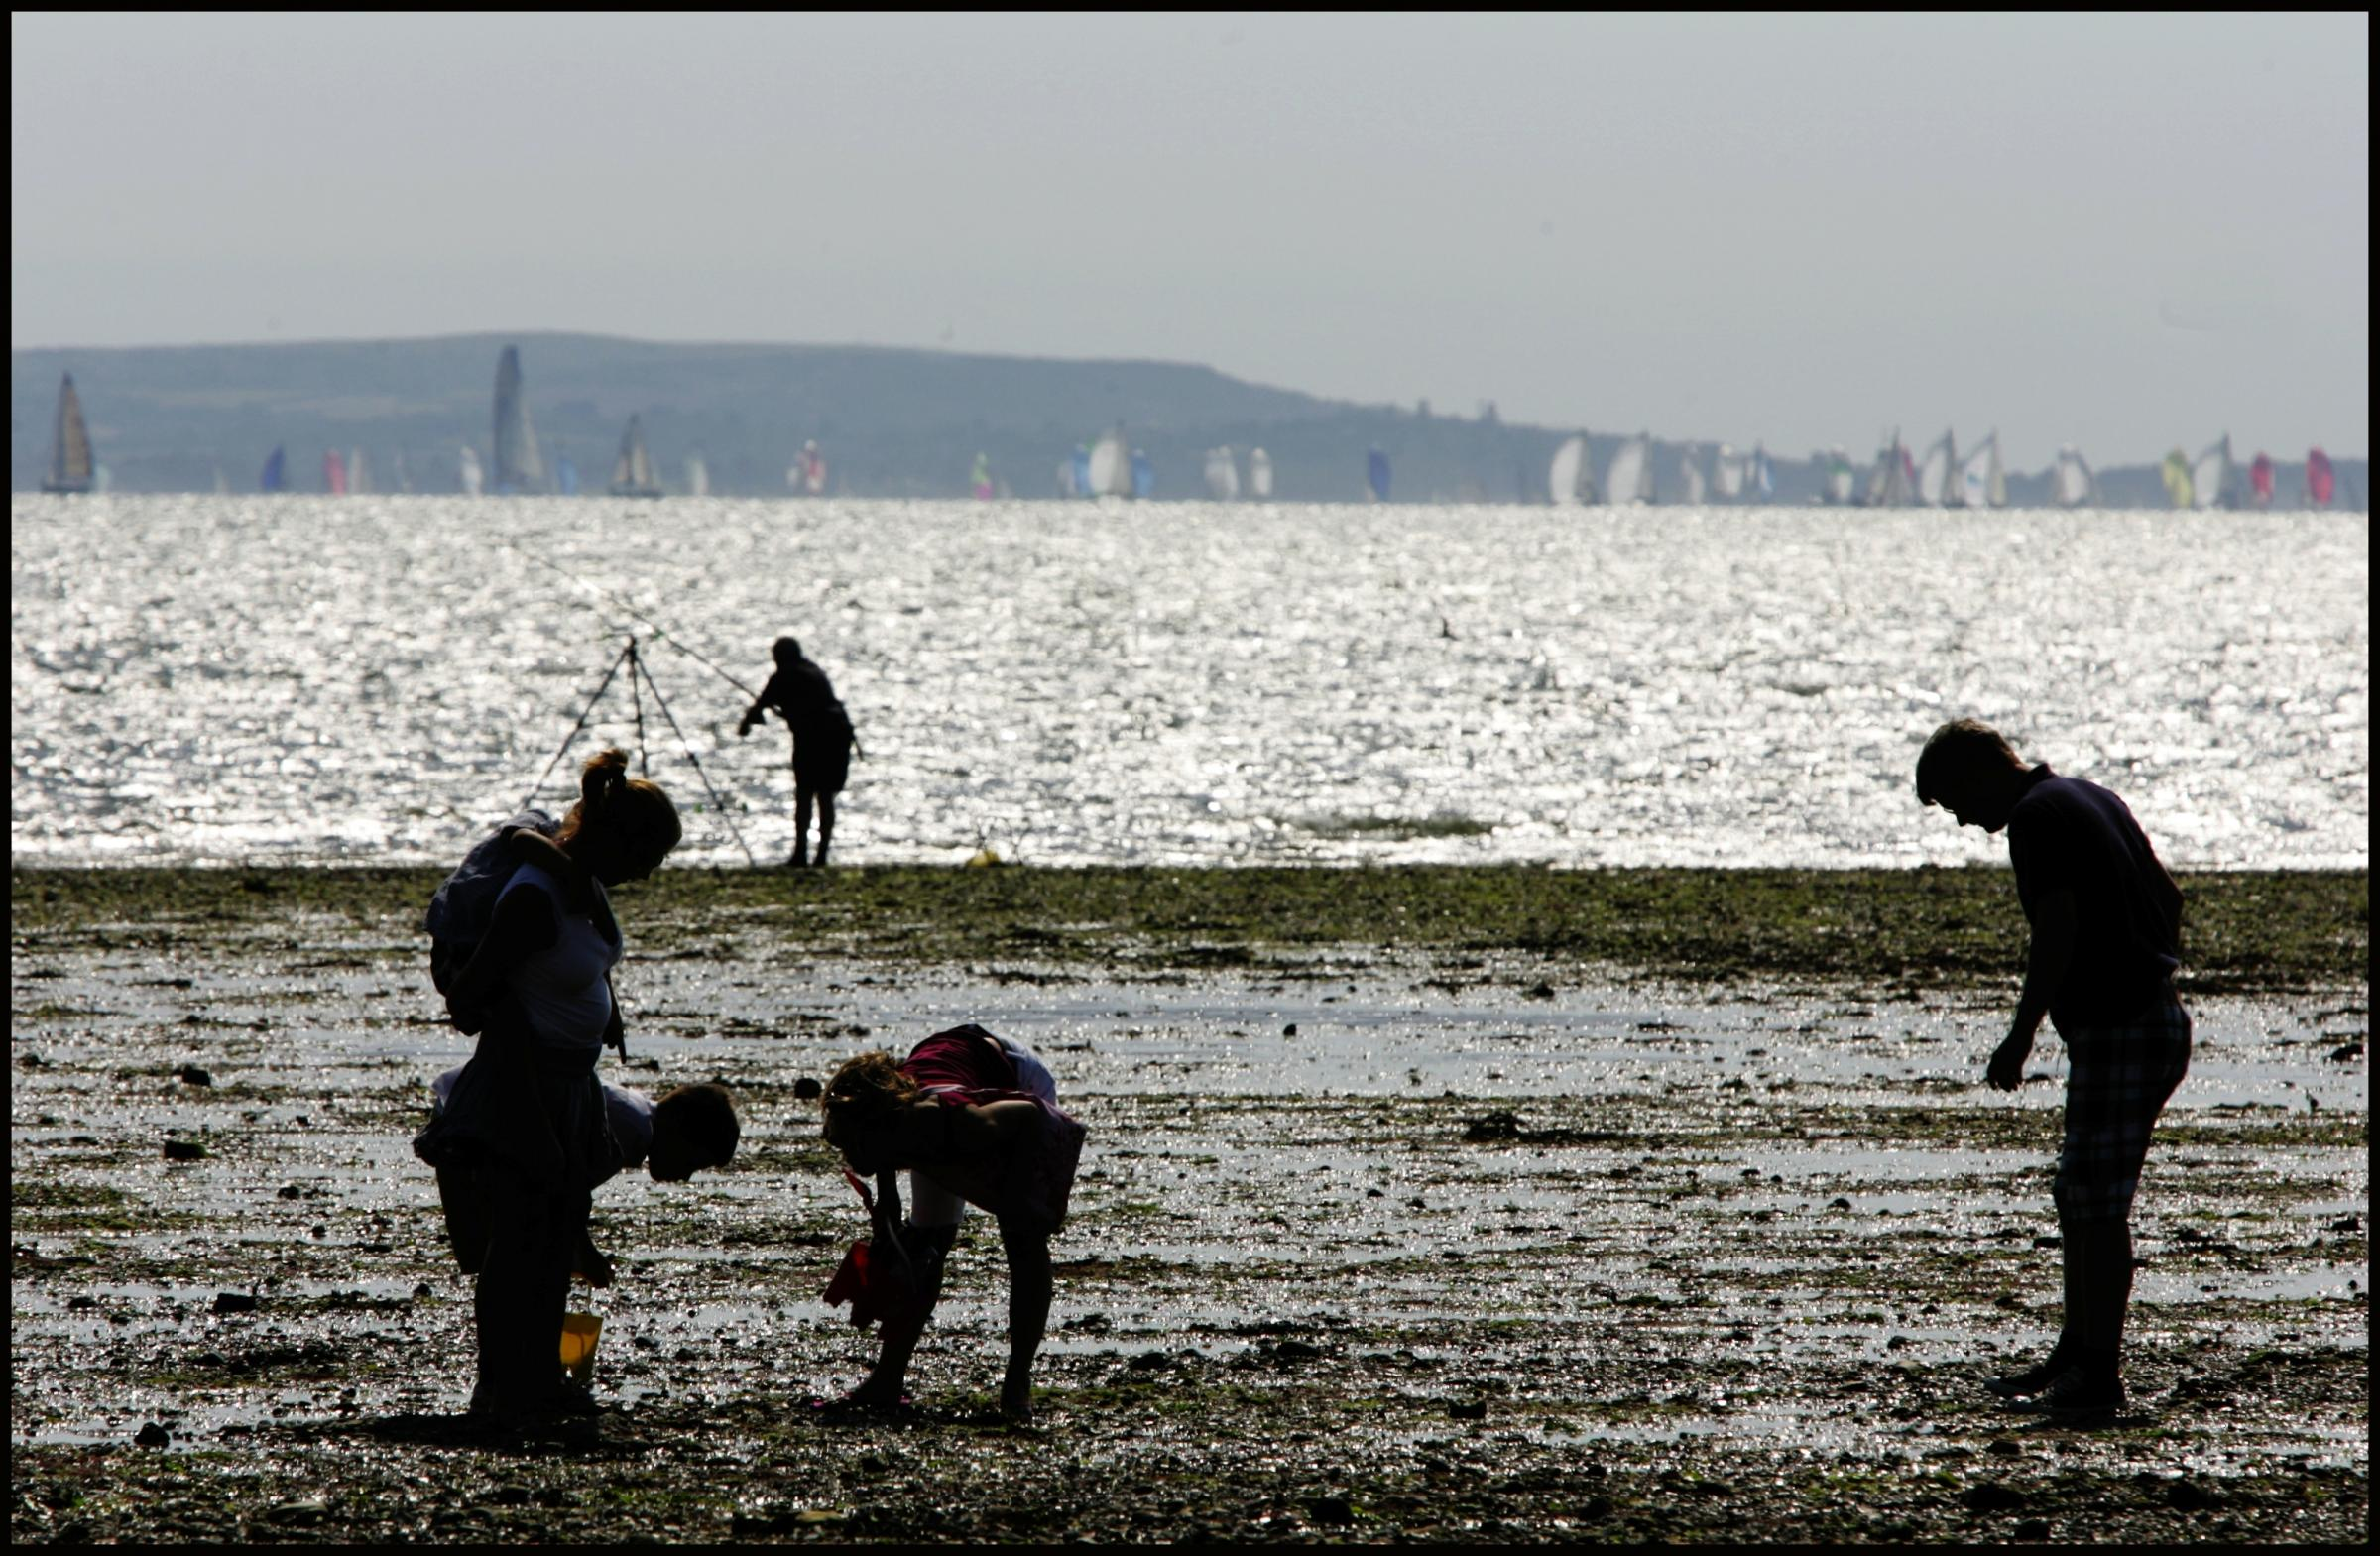 Low-tide at Lepe beach.